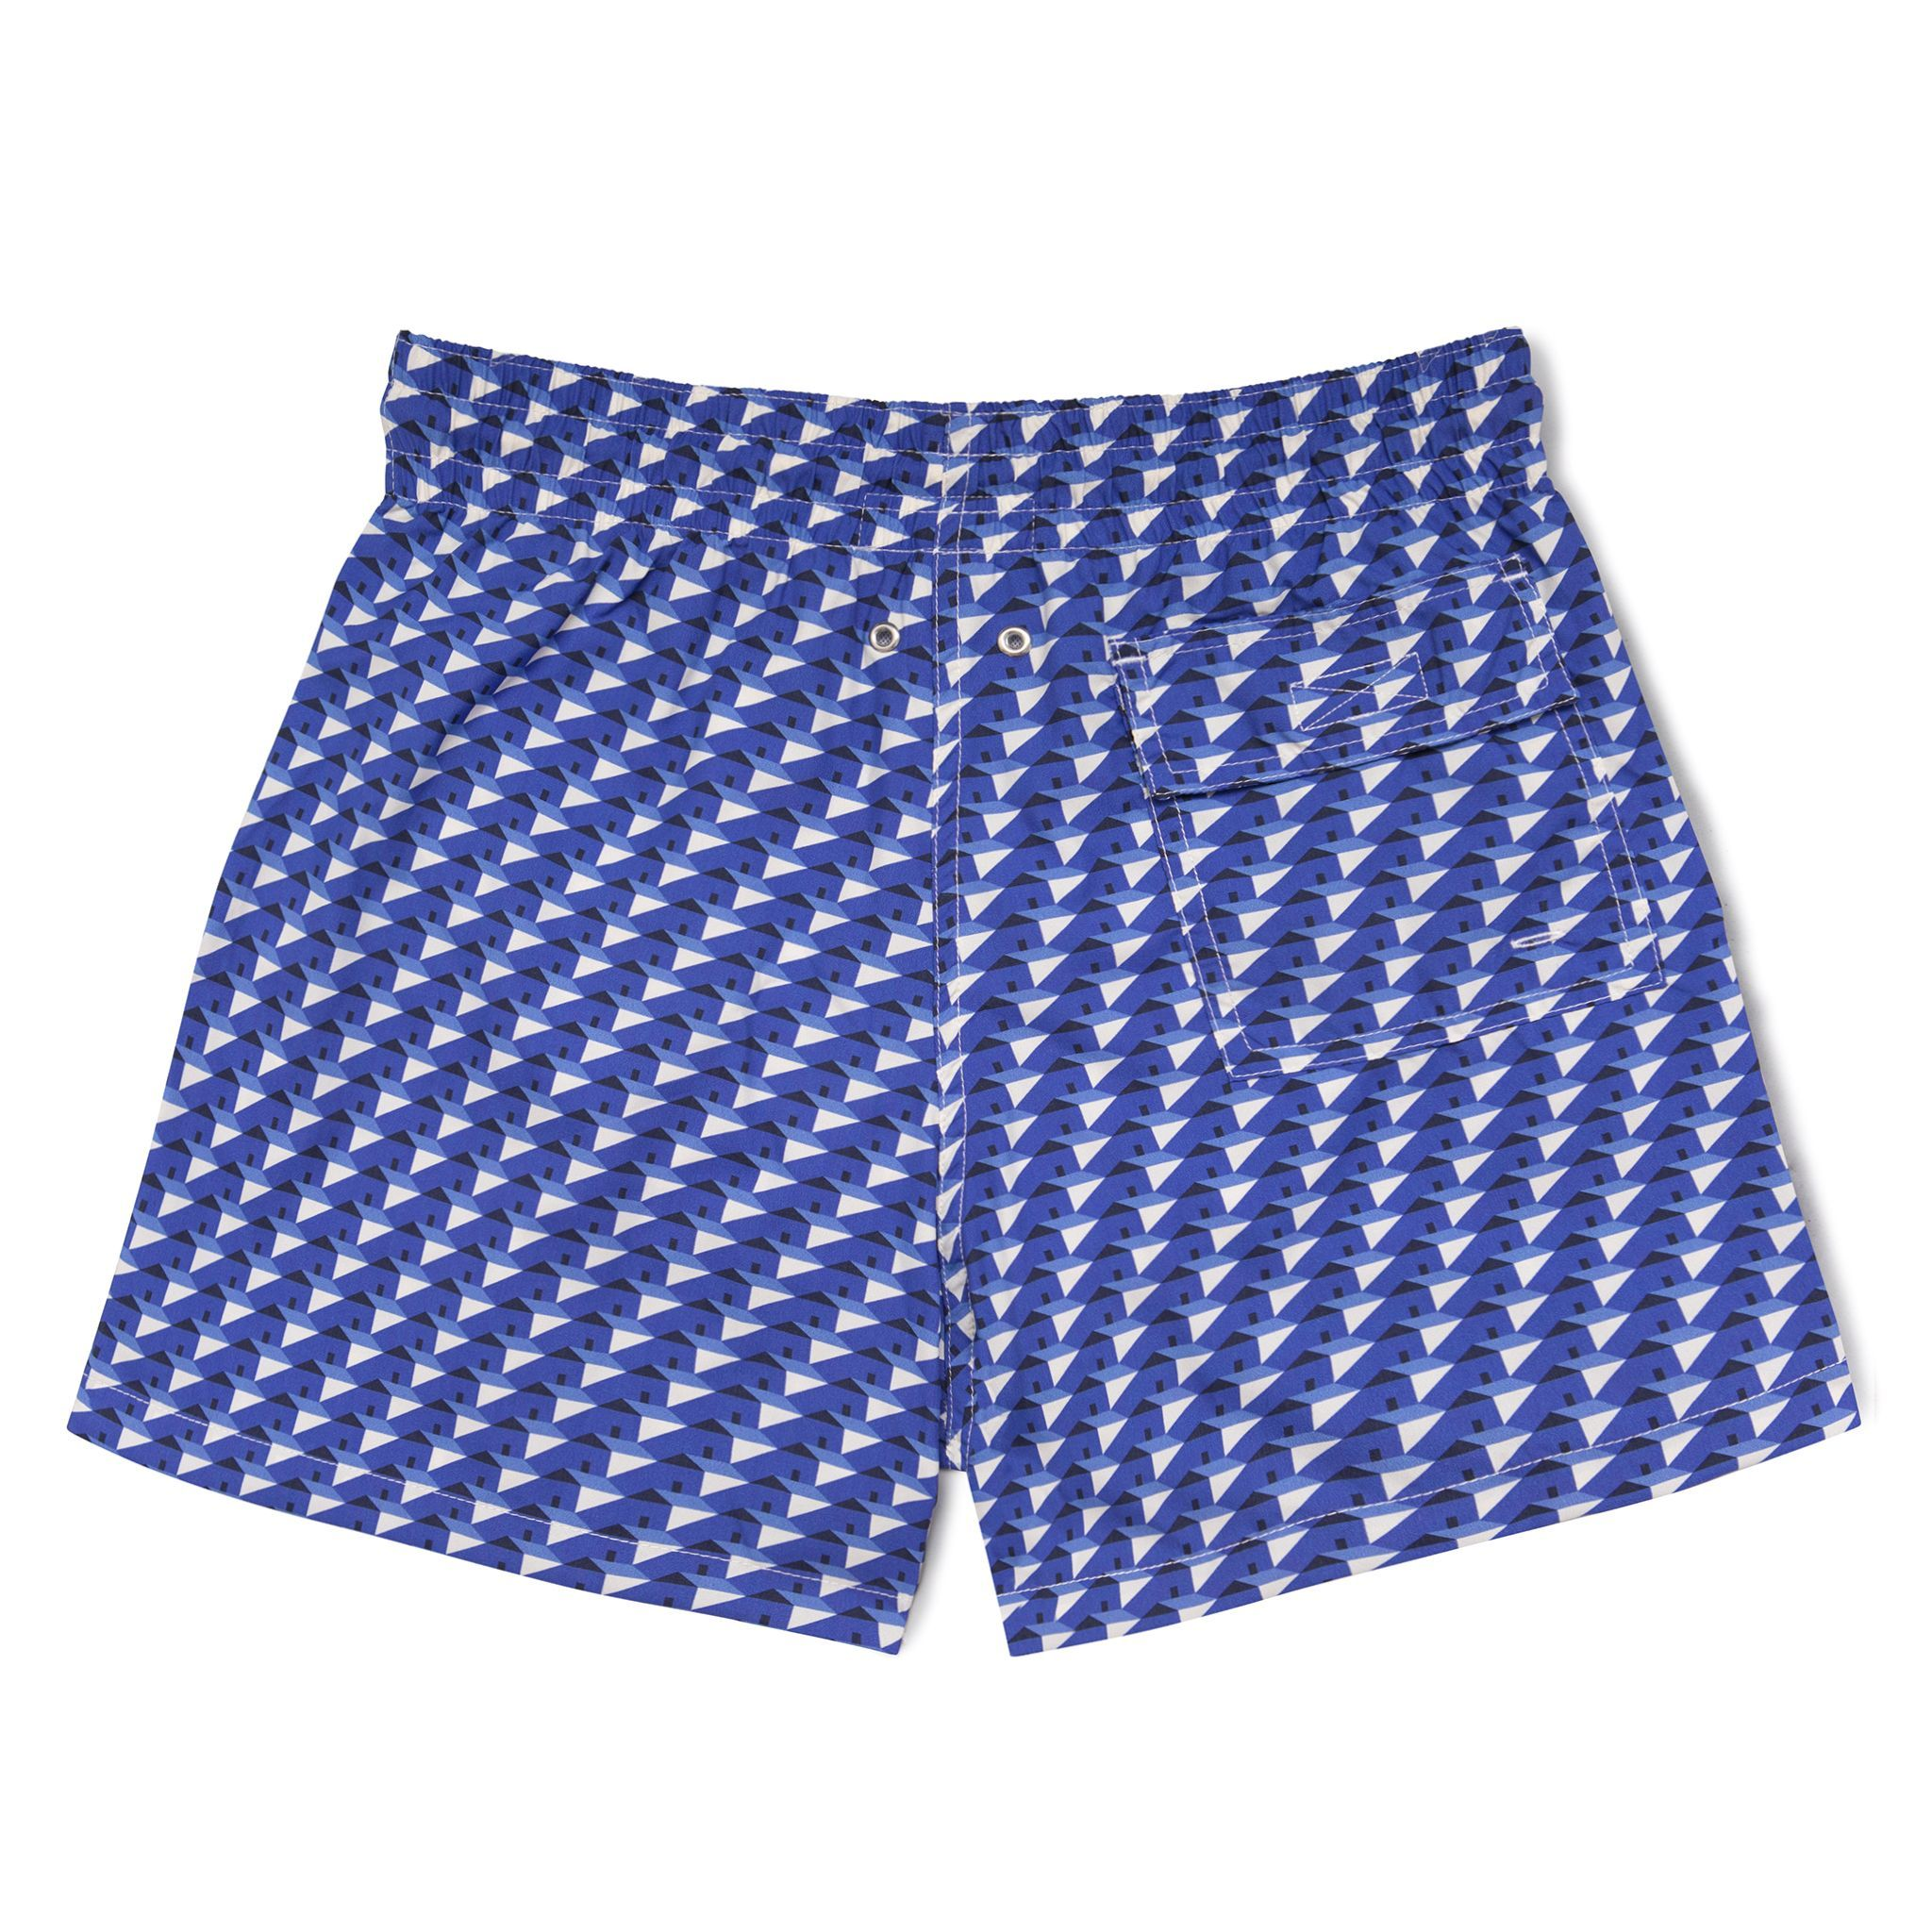 Short-Length Swim Shorts Costa Brava by Night